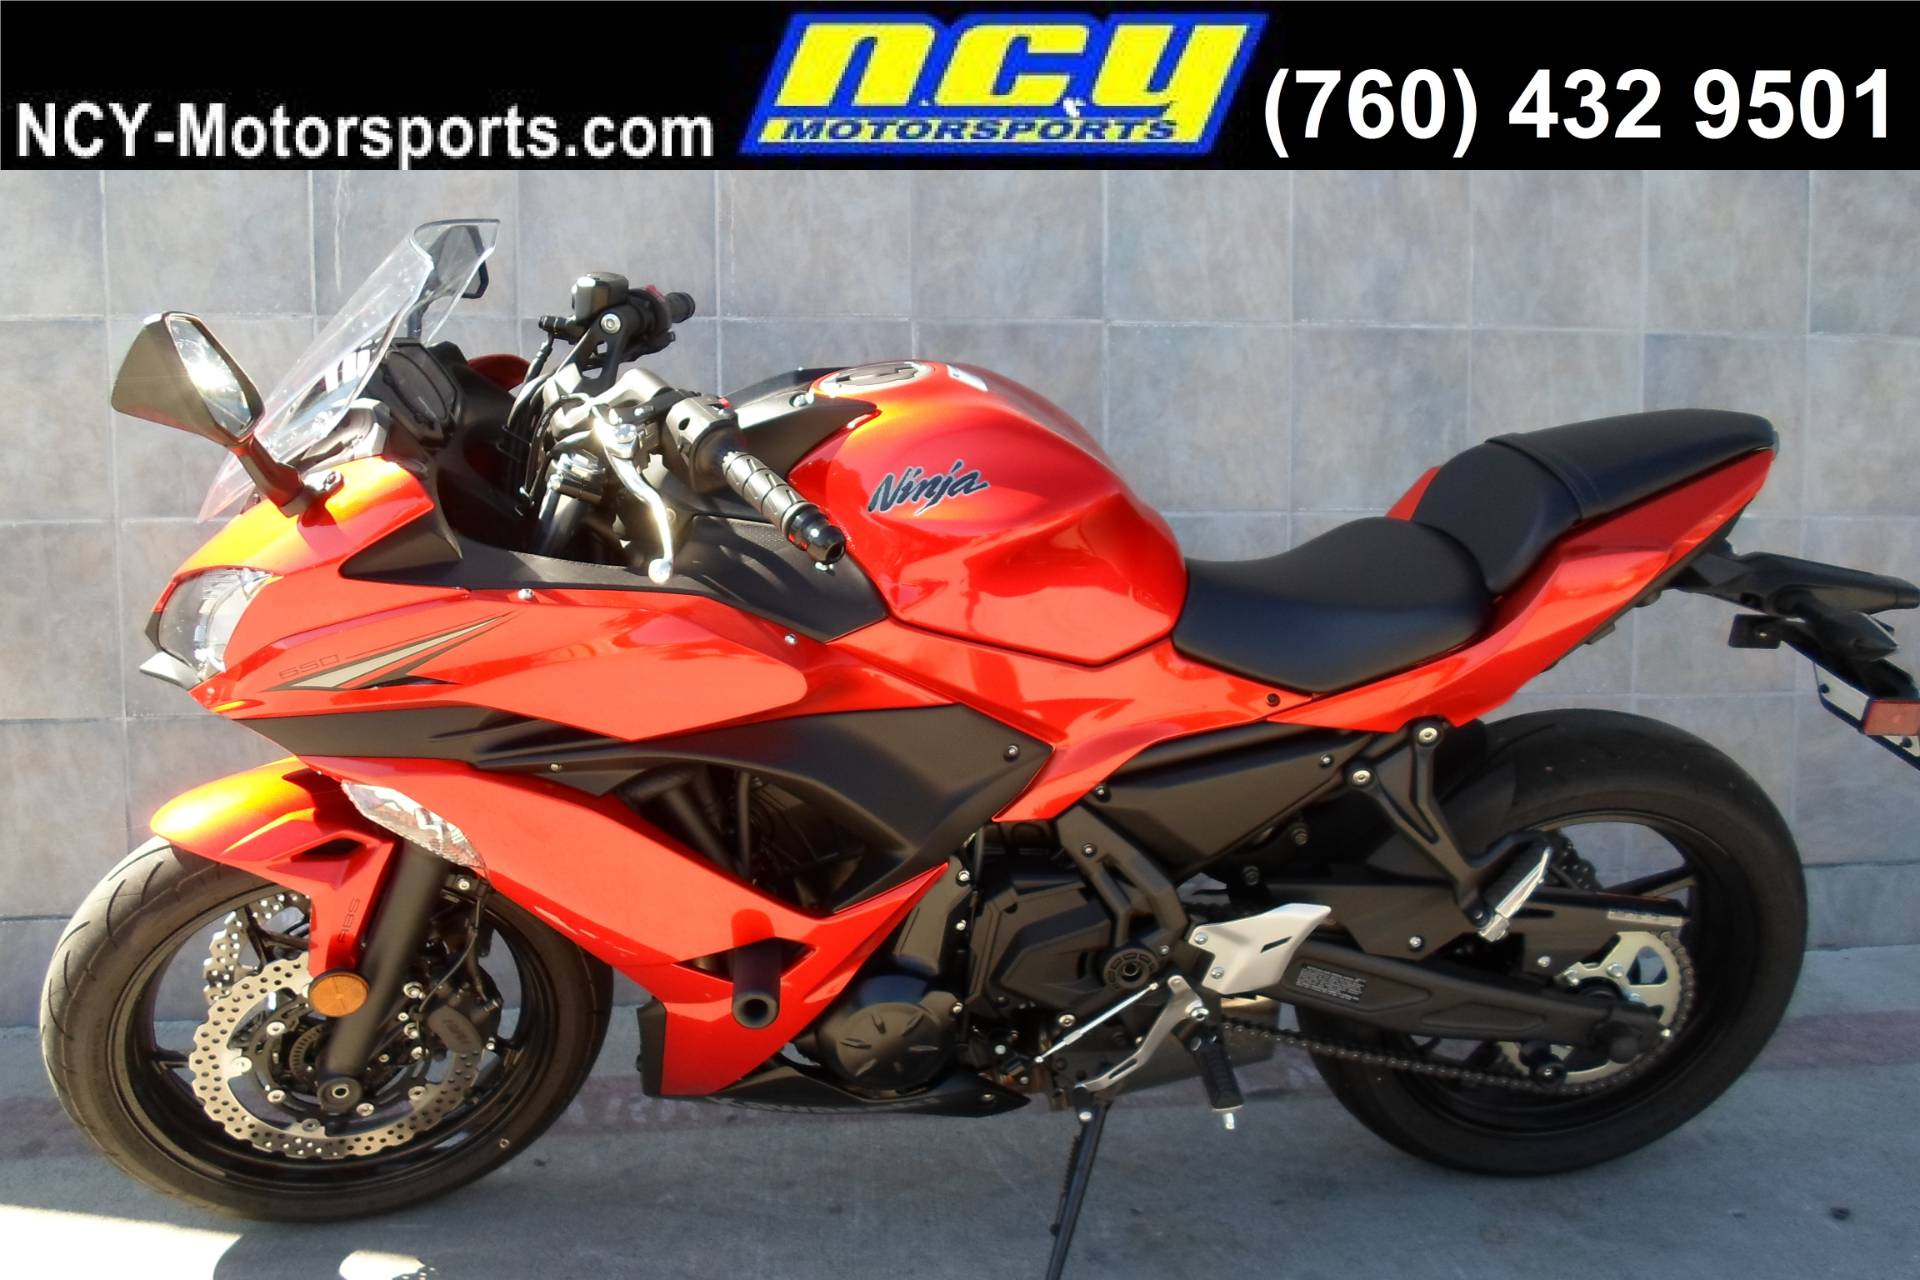 2017 Kawasaki Ninja 650 ABS in San Marcos, California